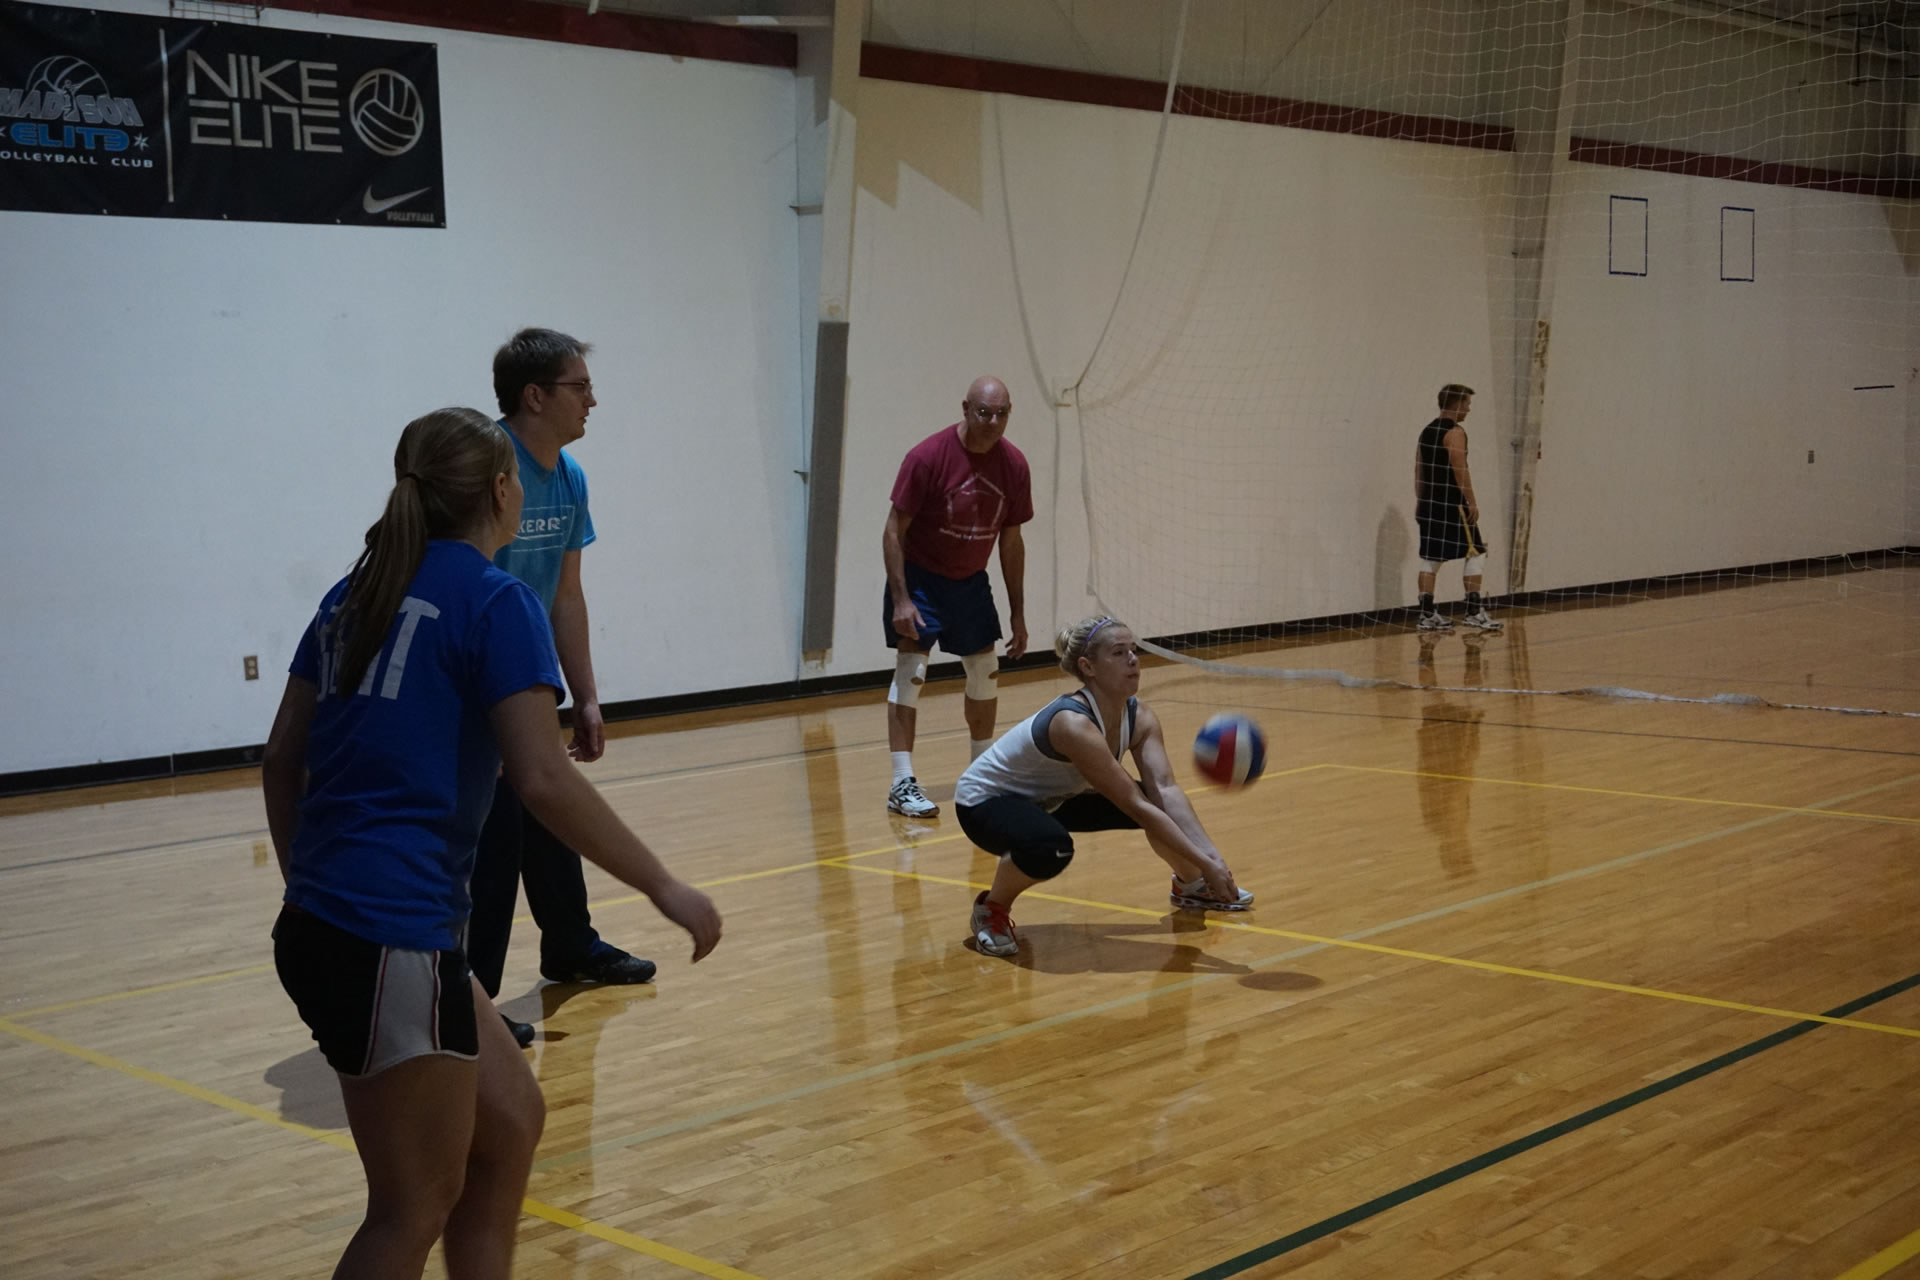 madison-turners-intermediate-volleyball-passing-dig-low-back-court